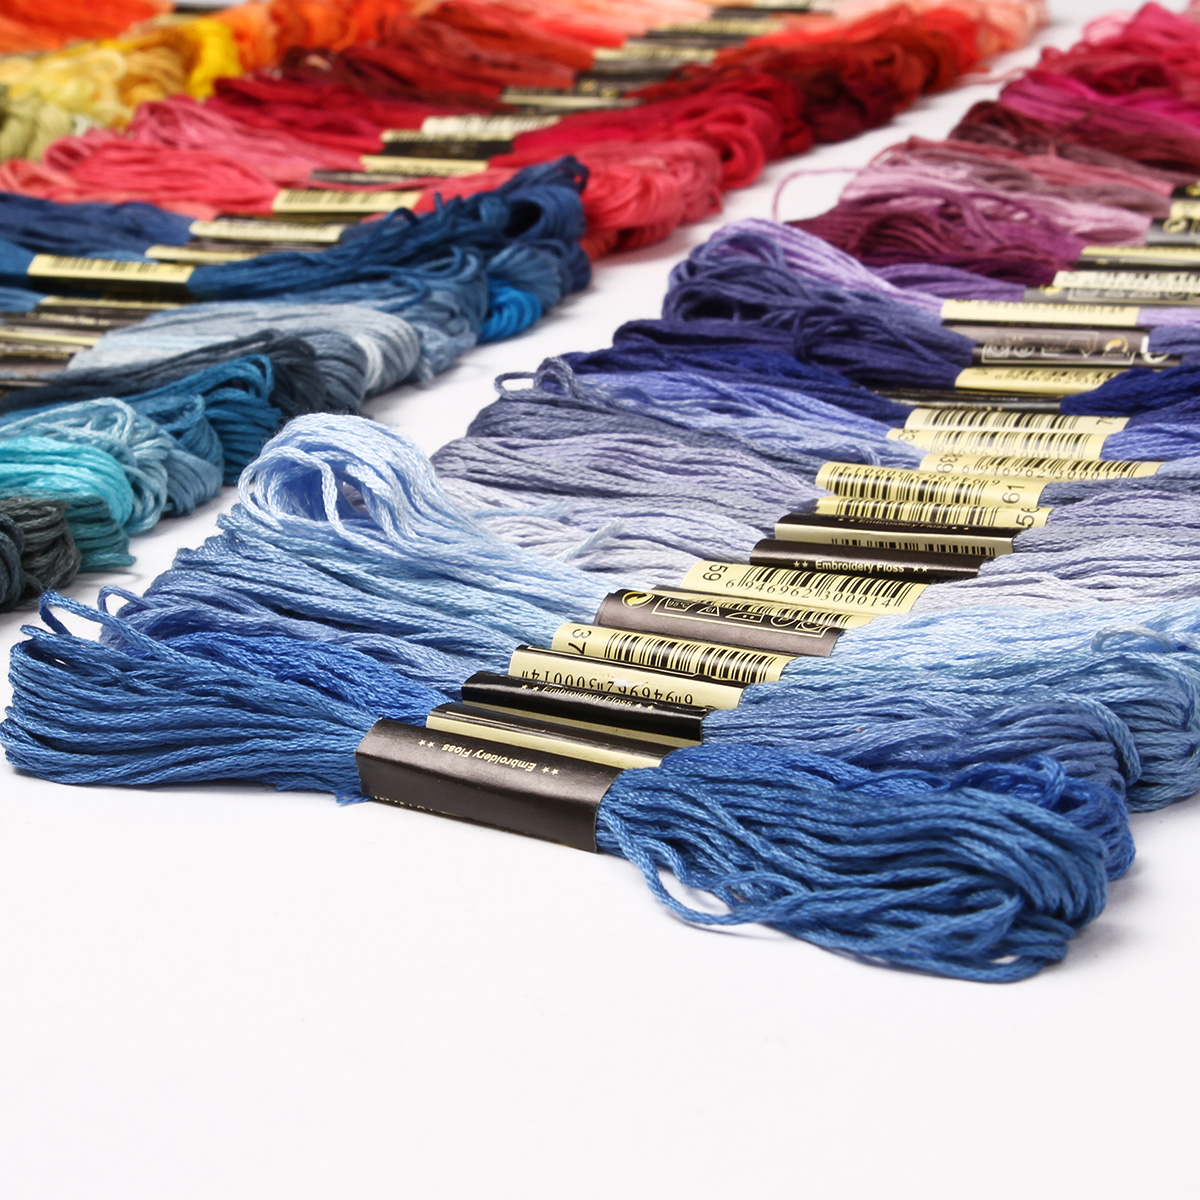 50-300-Color-Cross-Stitch-Thread-Embroidery-Floss-Sewing-Skeins-100-Cotton-Line thumbnail 2